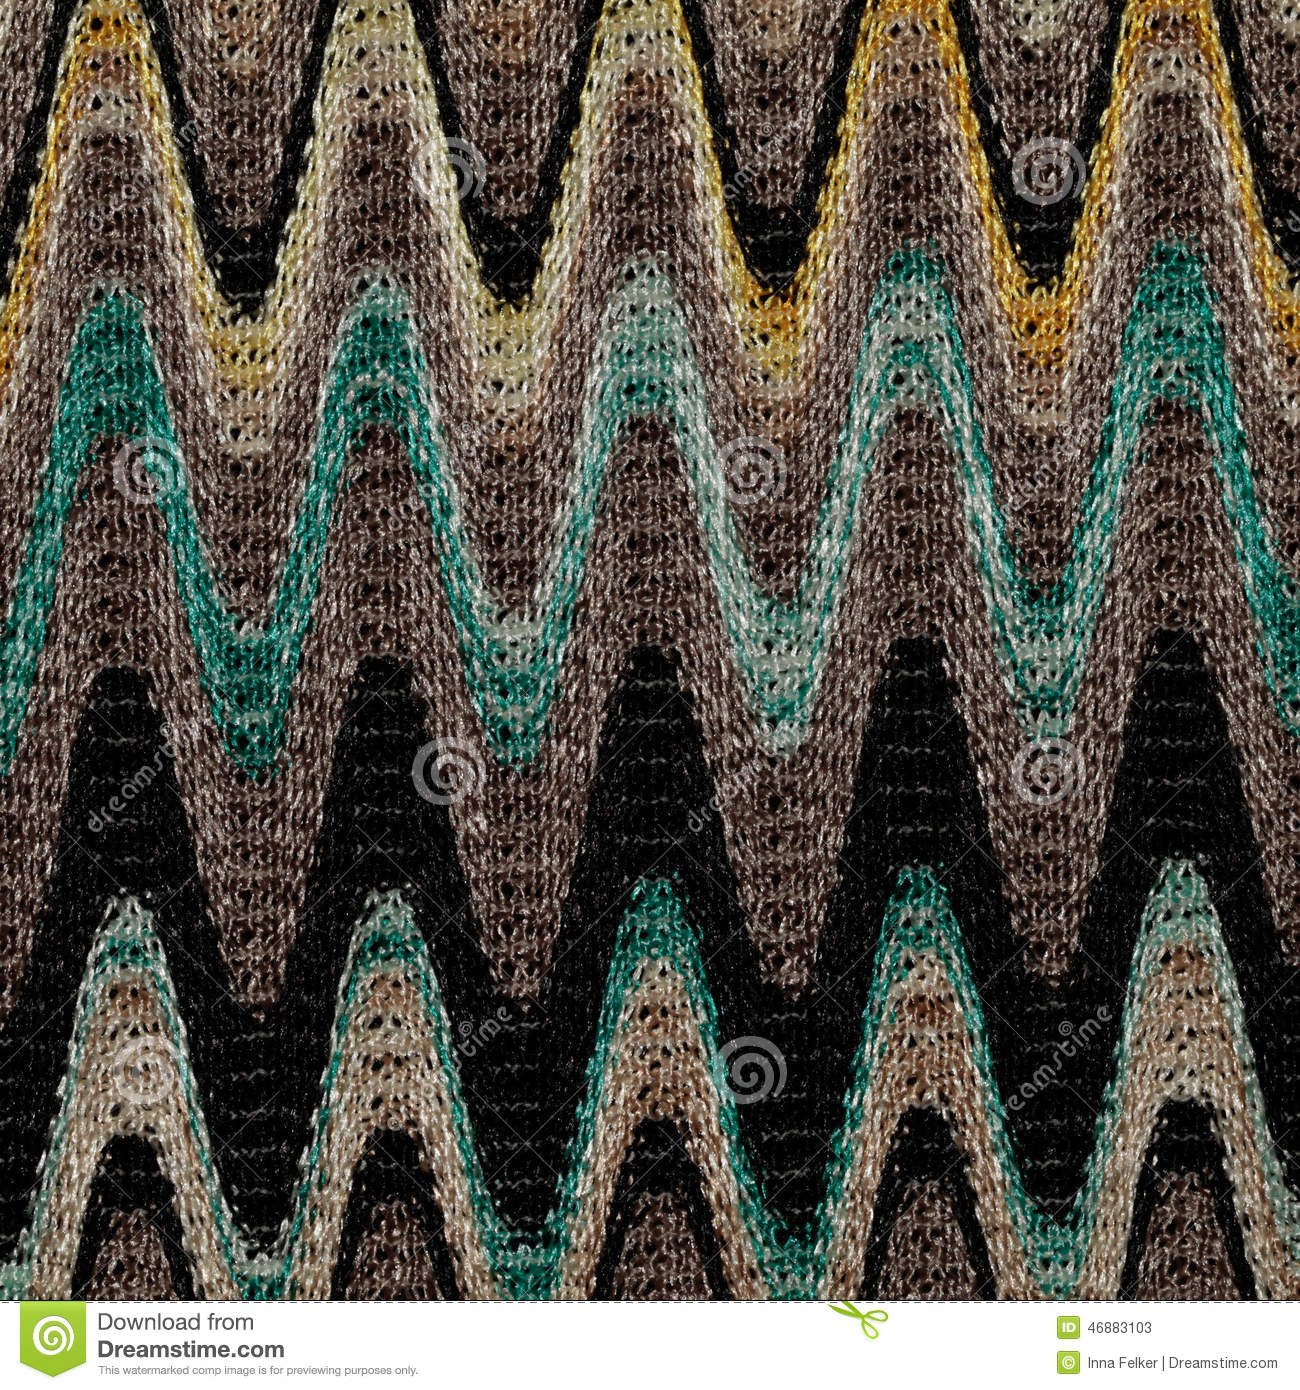 Blue, yellow and grey waves lines pattern fabric